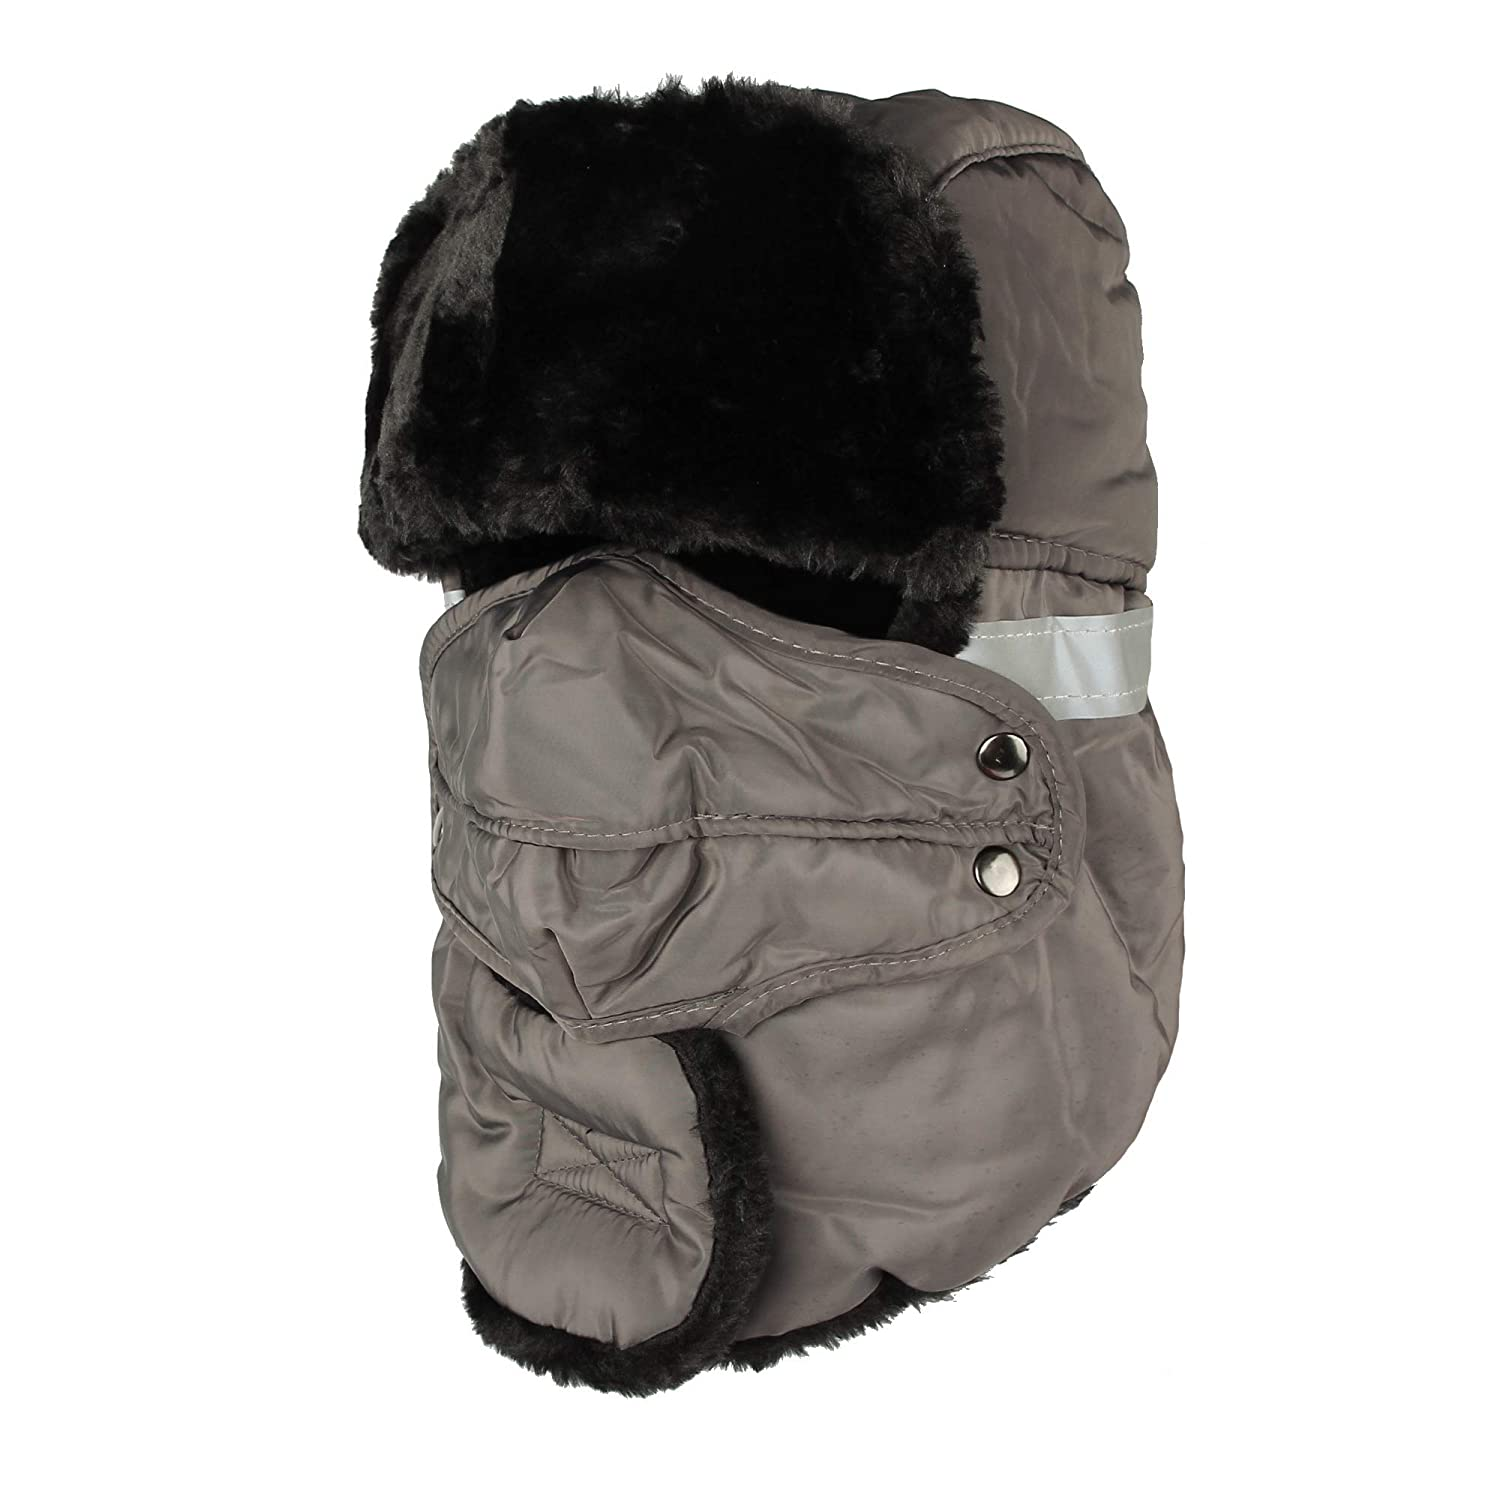 WITHMOONS Winter Trapper Russian Hat Earflaps Windproof cap AZT0014